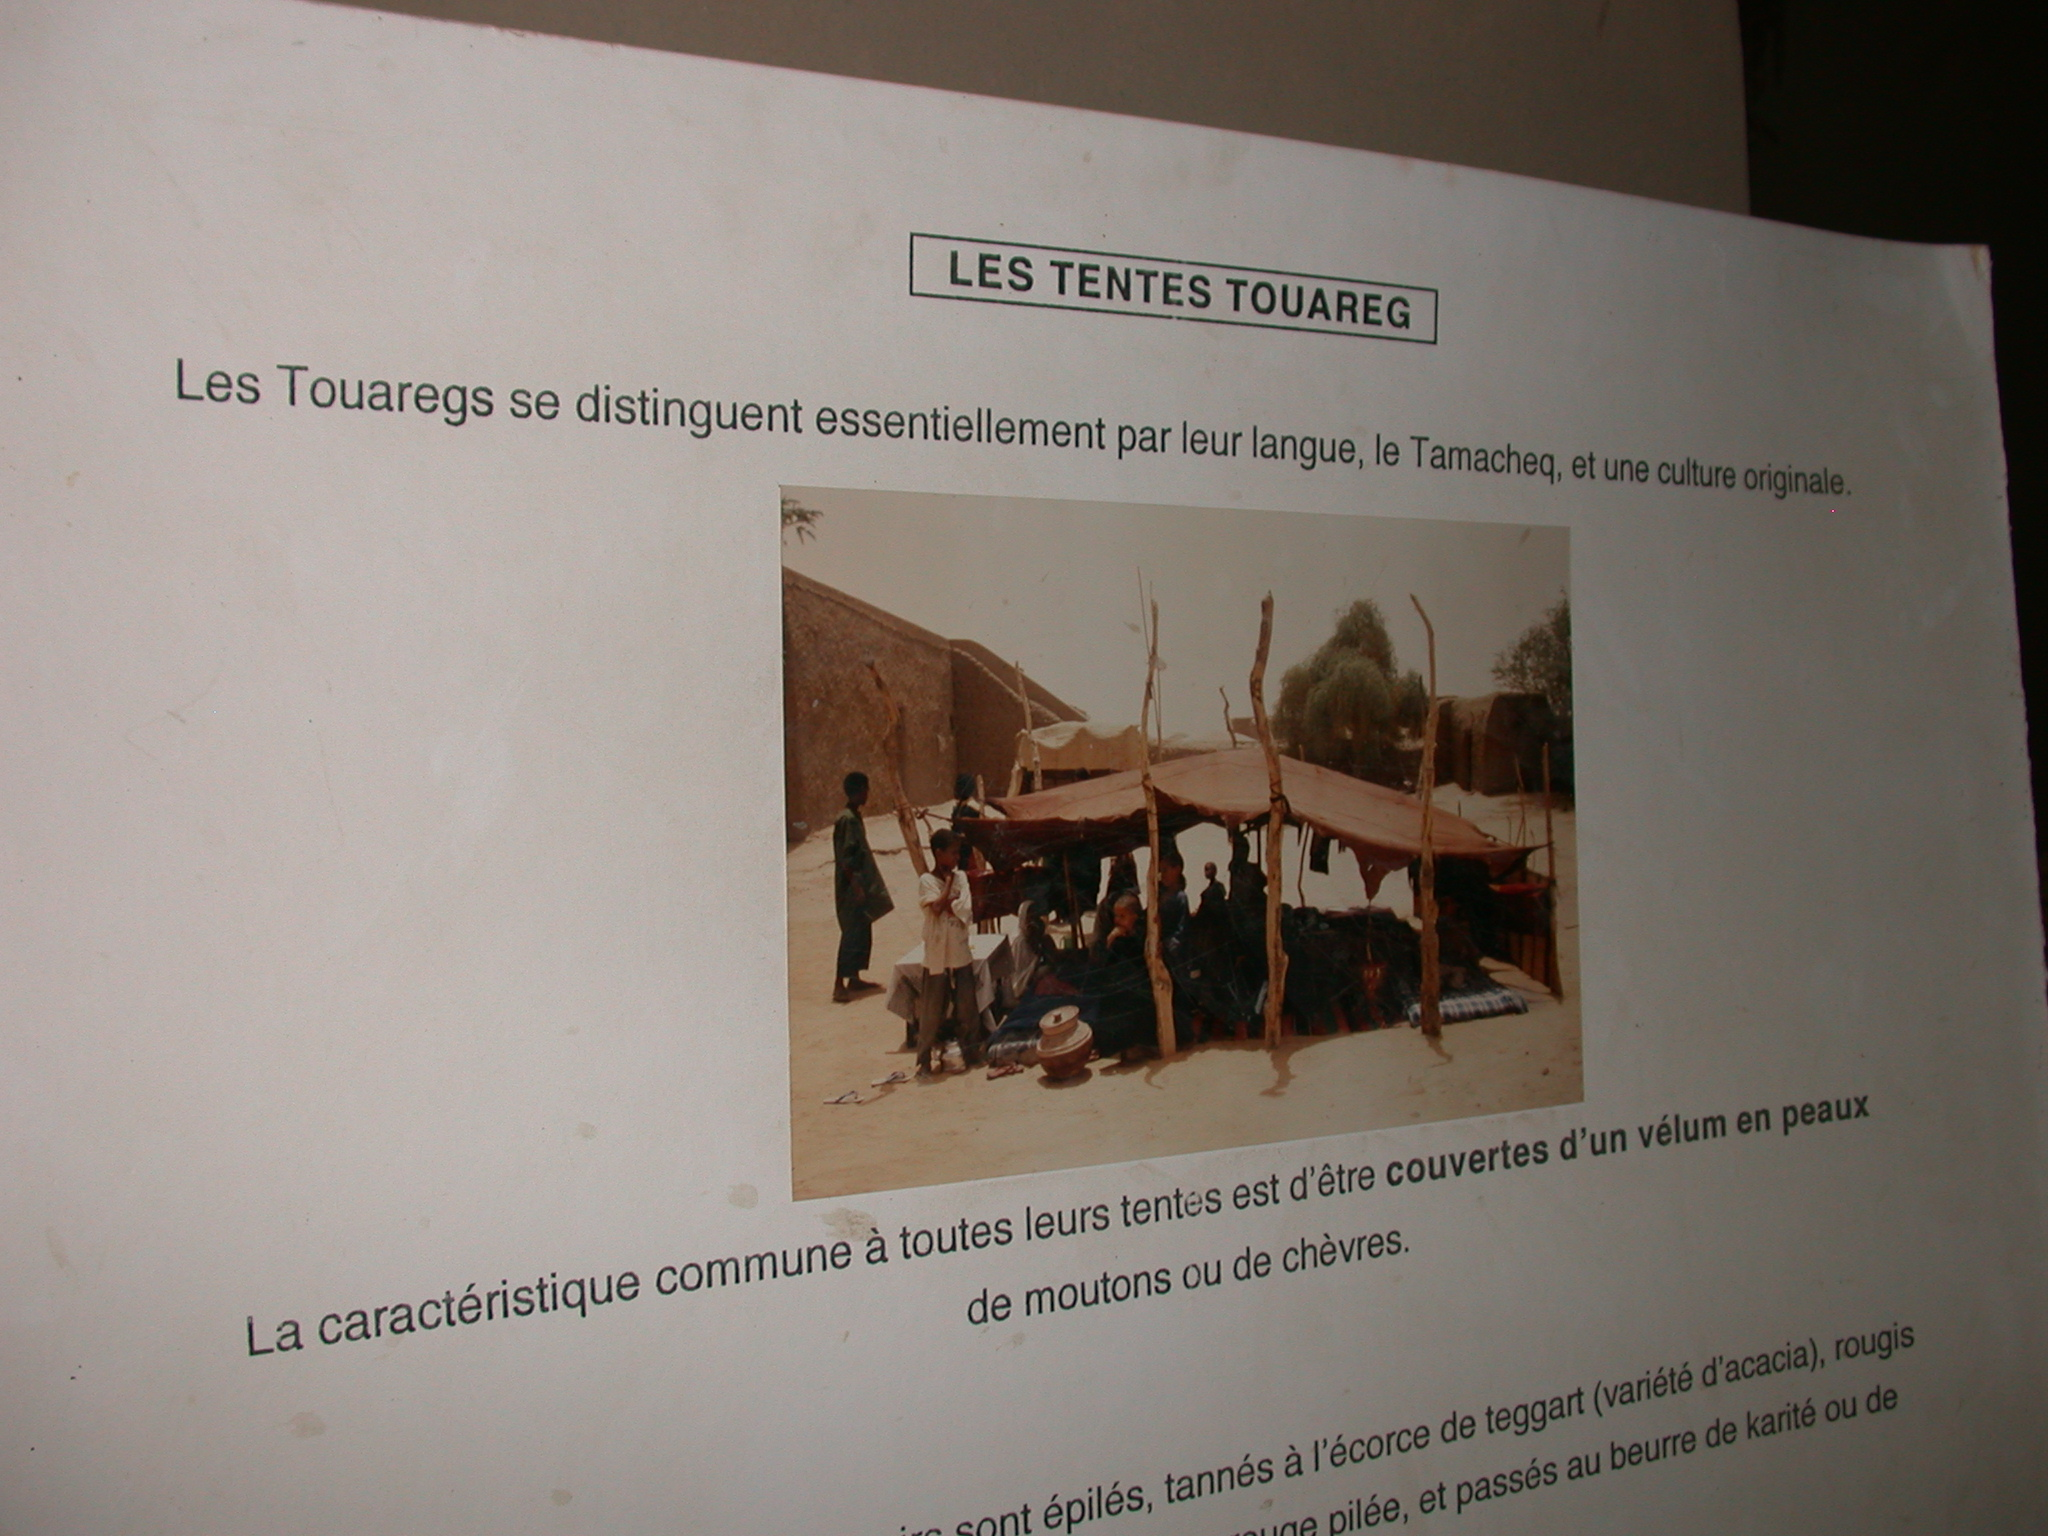 Description of Tuareg Tents, Part I, Timbuktu Ethnological Museum, Timbuktu, Mali